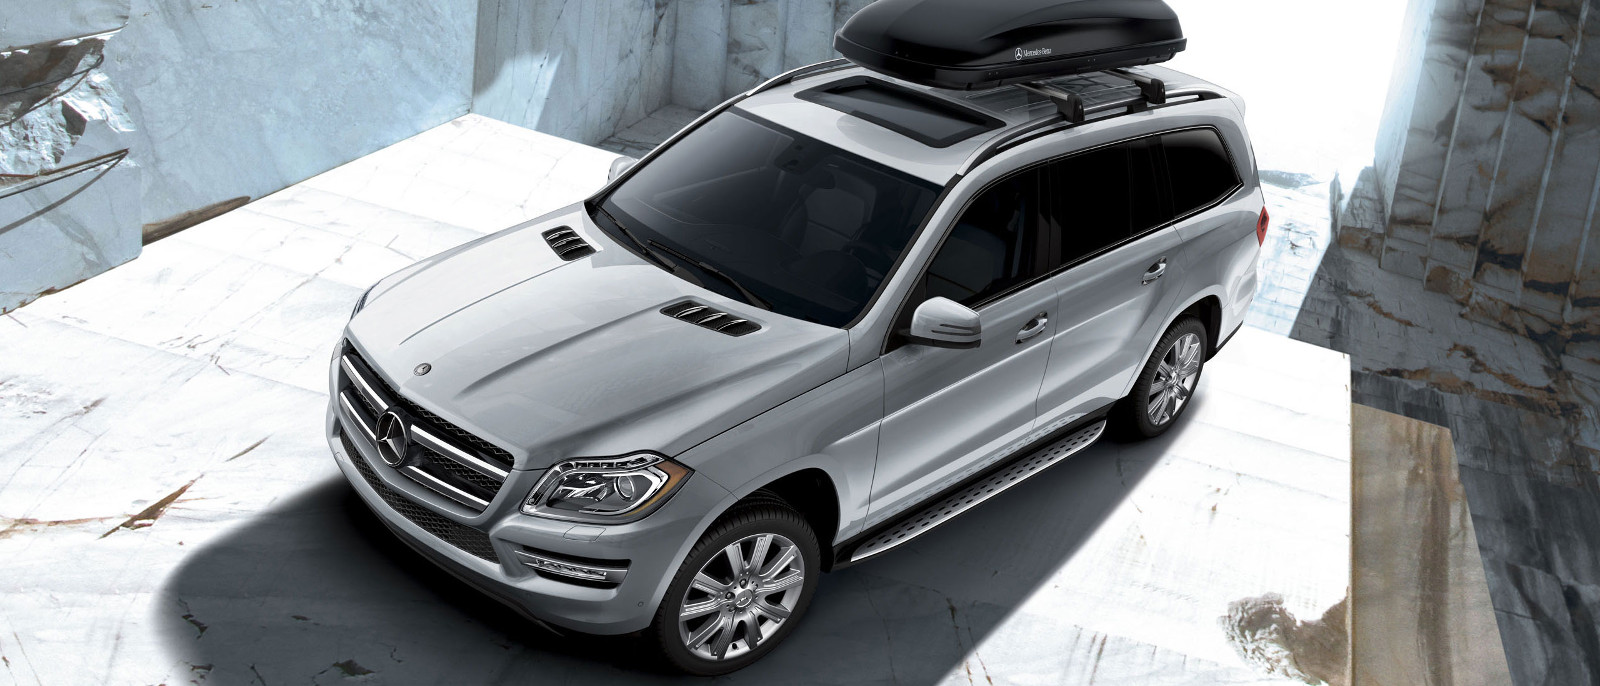 2015 Mercedes-Benz GL450 with Accessories